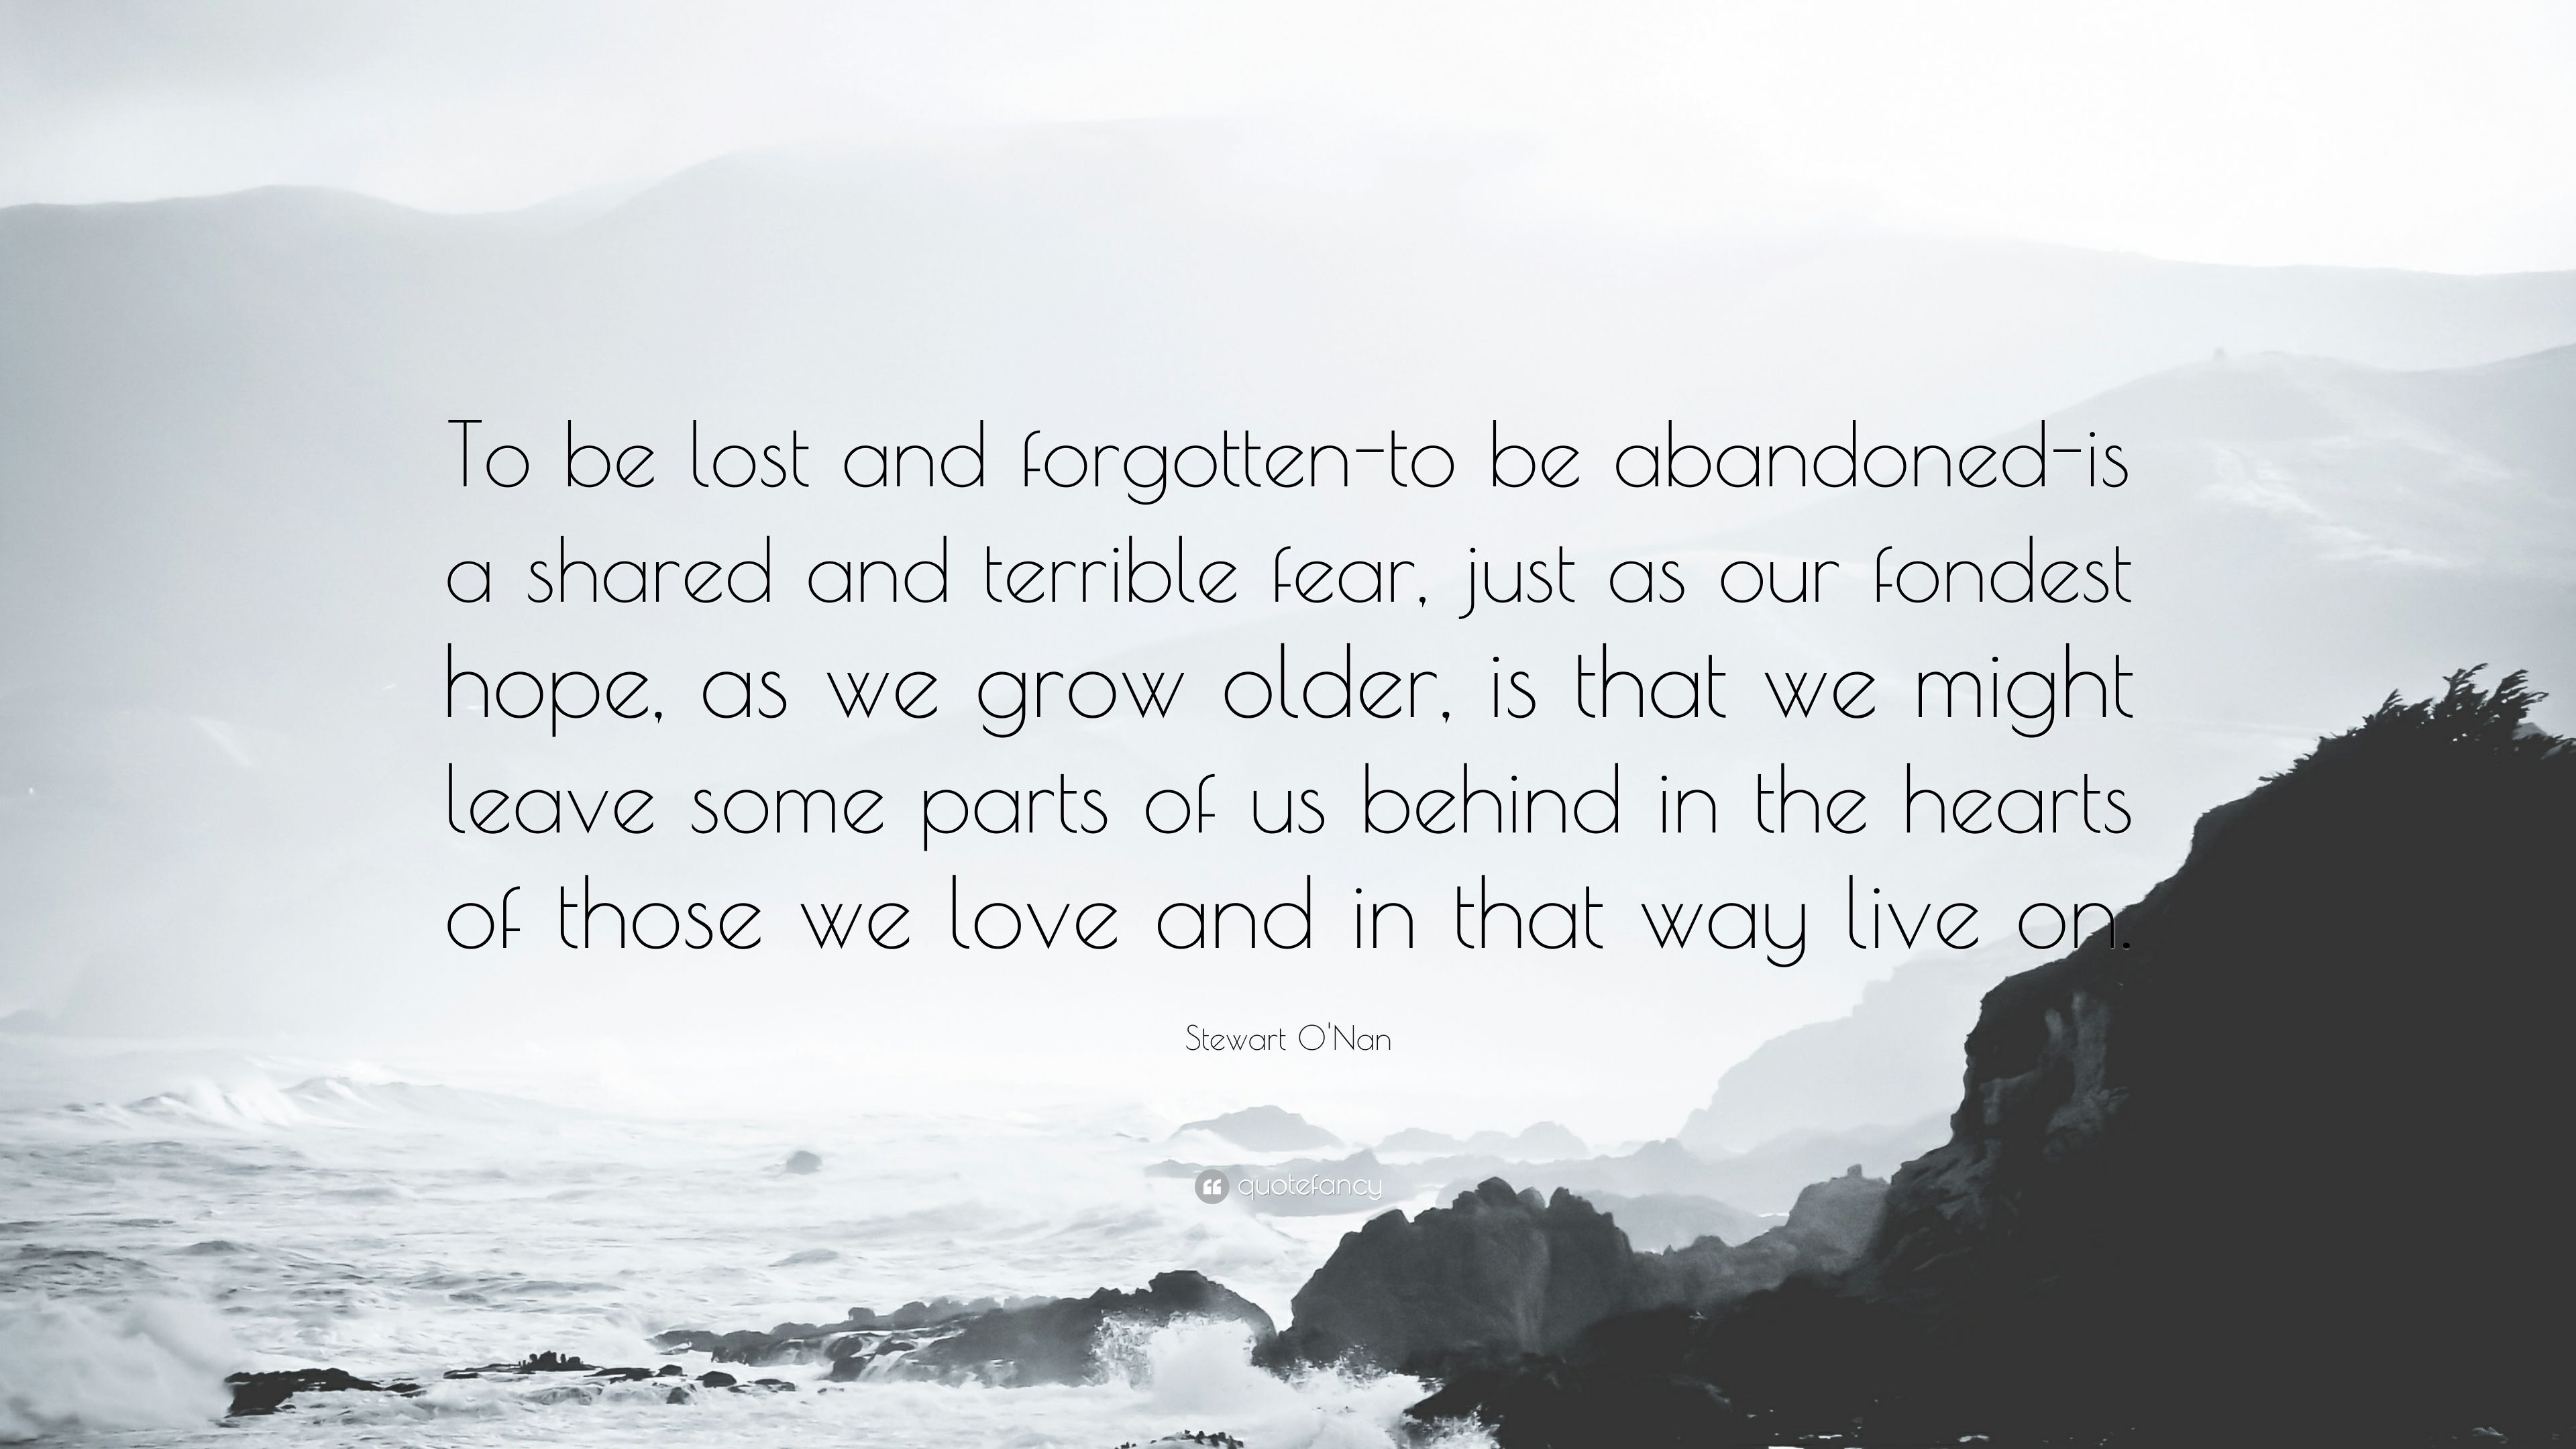 Stewart O Nan Quote To Be Lost And Forgotten To Be Abandoned Is A Shared And Terrible Fear Just As Our Fondest Hope As We Grow Older Is T 7 Wallpapers Quotefancy